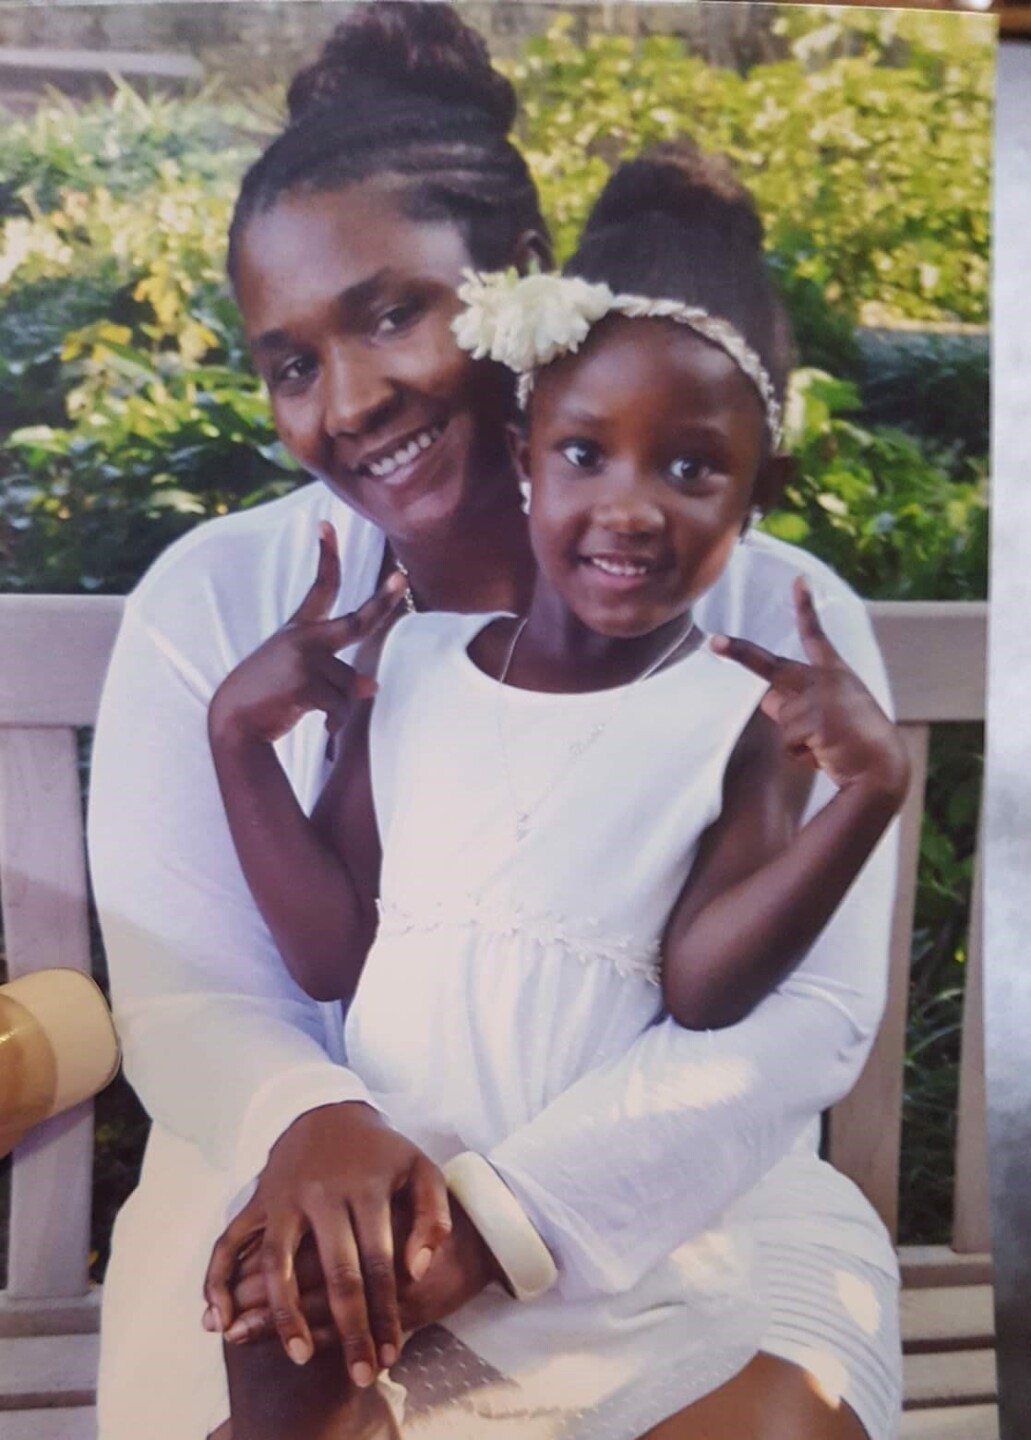 Kendra Davis and her daughter smile in an undated photo. Both are wearing white, and Davis's daughter is sitting on her lap.